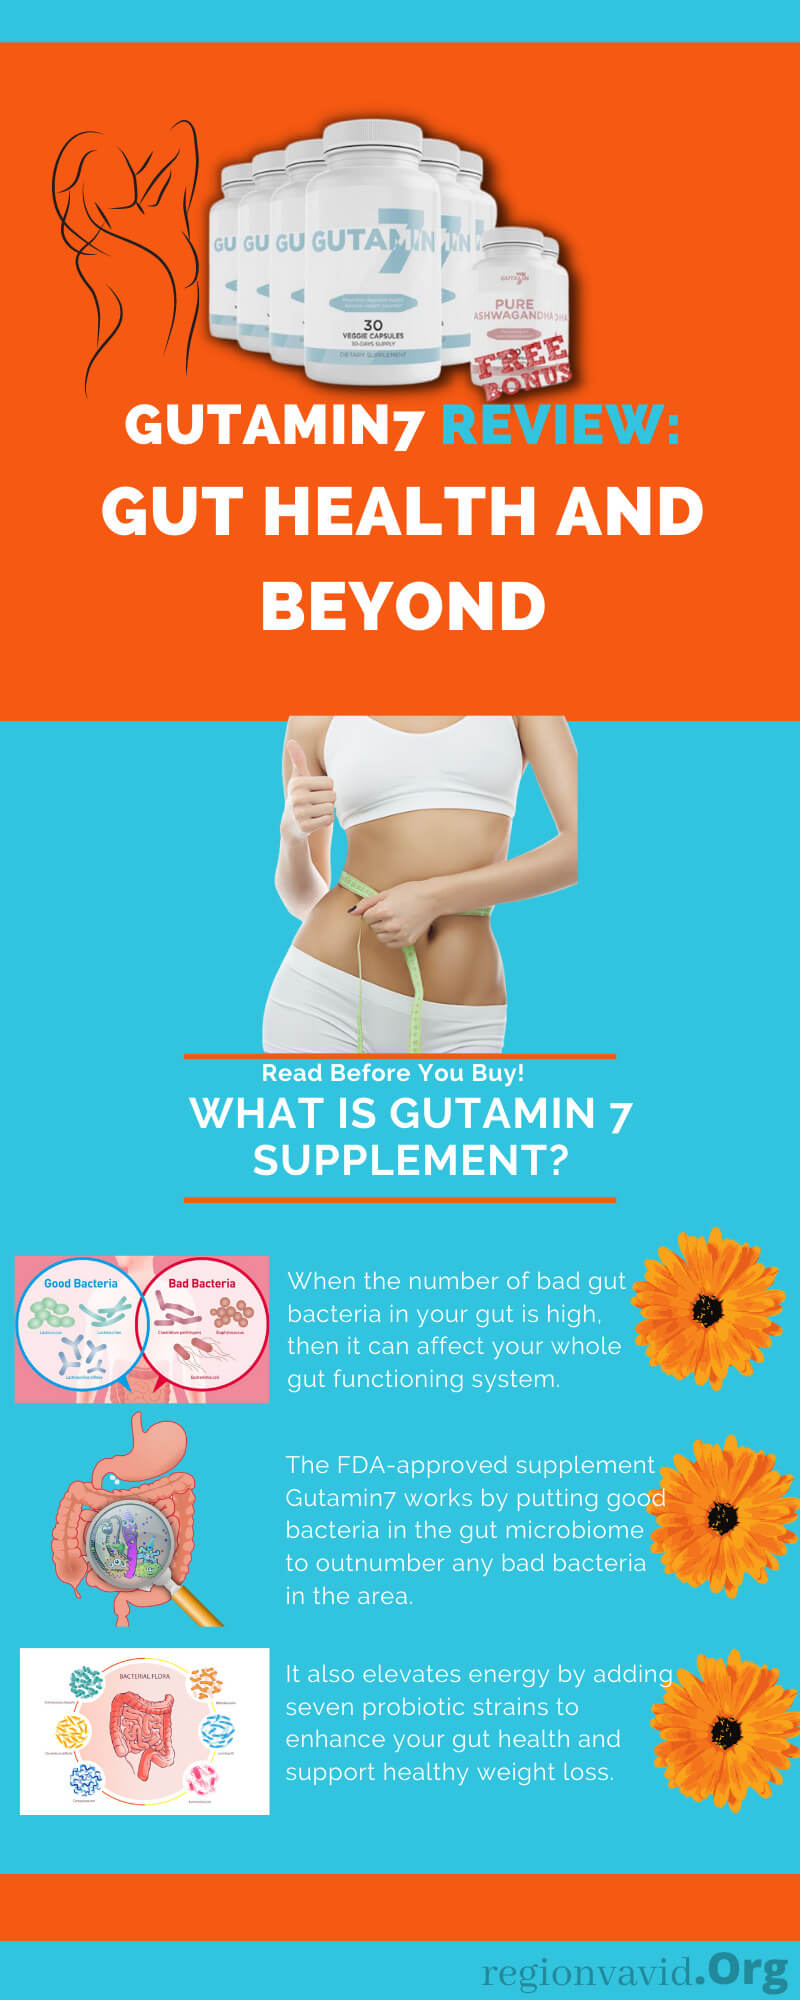 Gutamin7 About Gut Health And Beyond